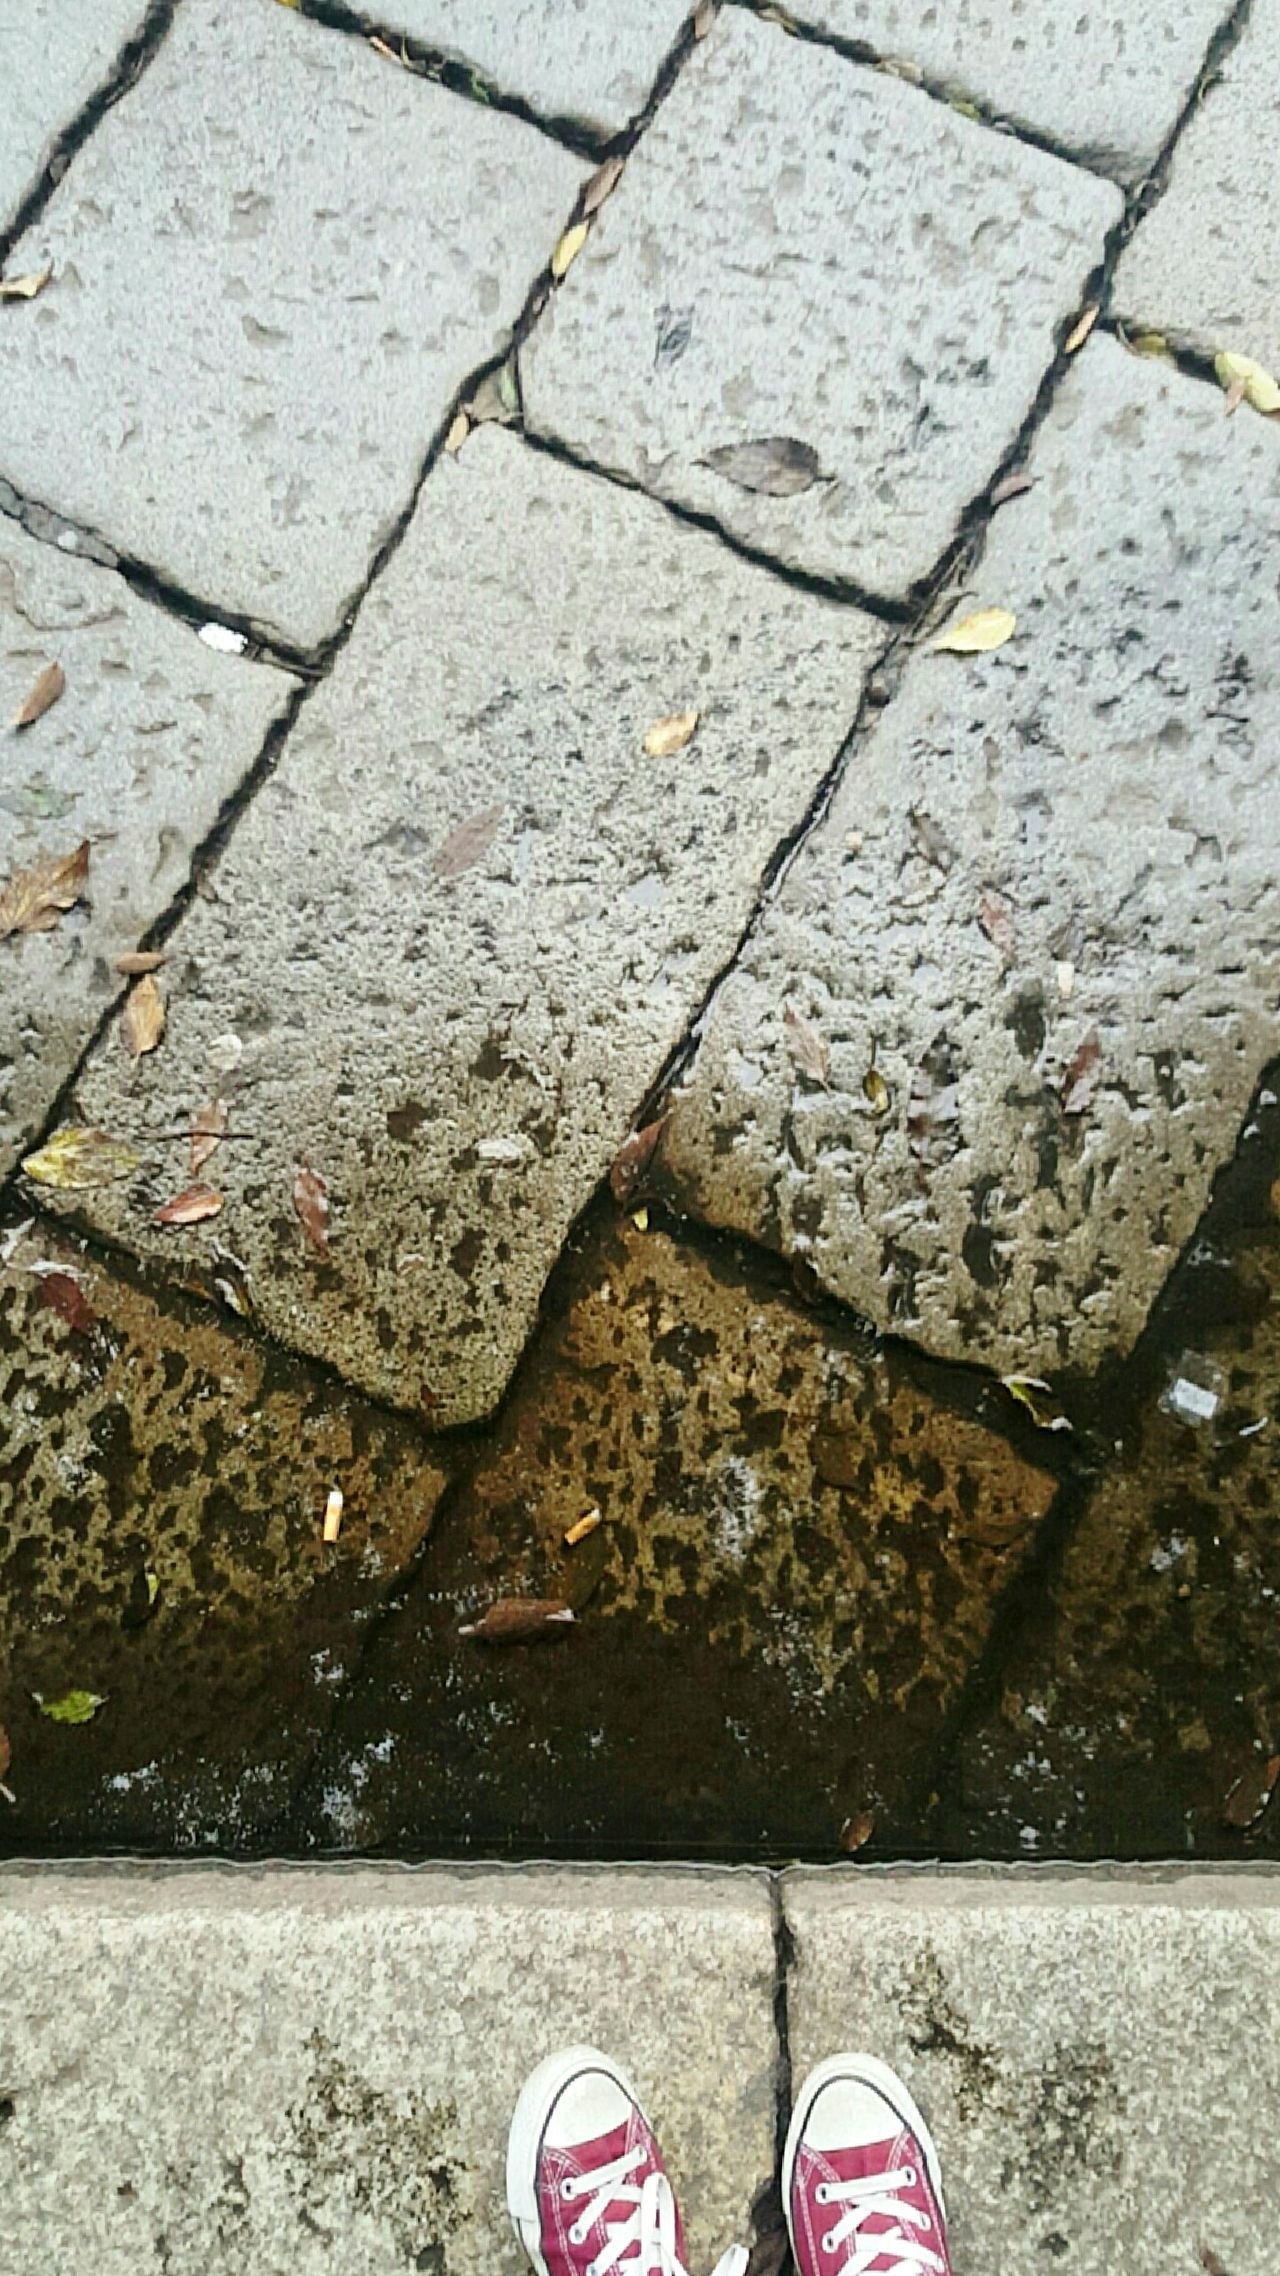 Rainy Shoe Standing Outdoors High Angle View Rany Day Citylife Street Pollution Italy Milan Noedit Nopeople Shoes Pavement Paving Stone Fall Winter Landscape InstaPlace